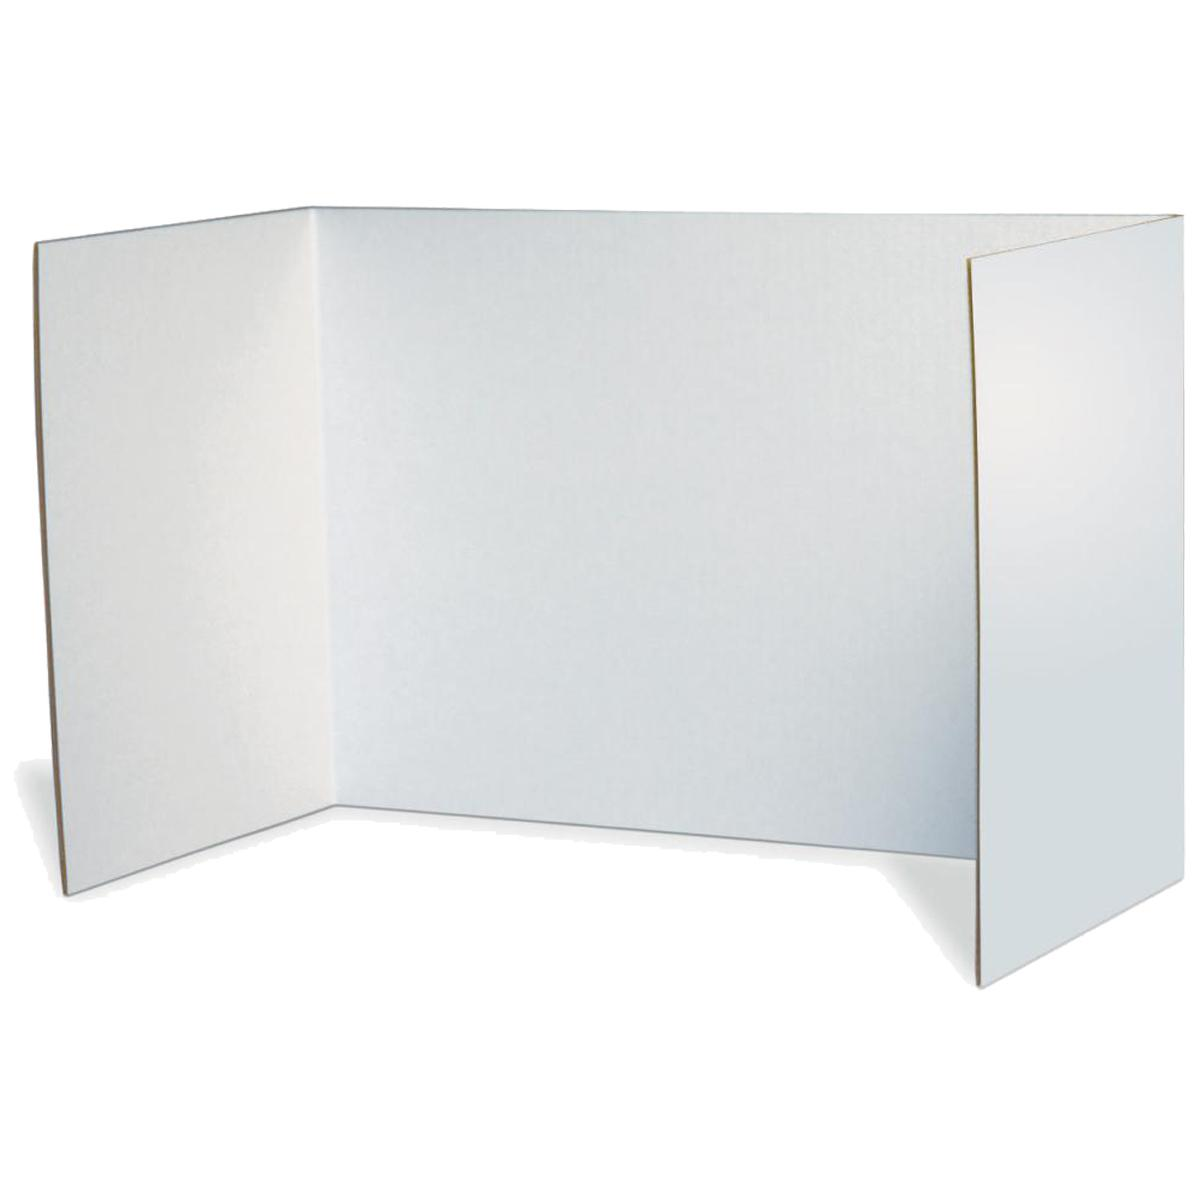 Privacy Boards 4-Pack (White)